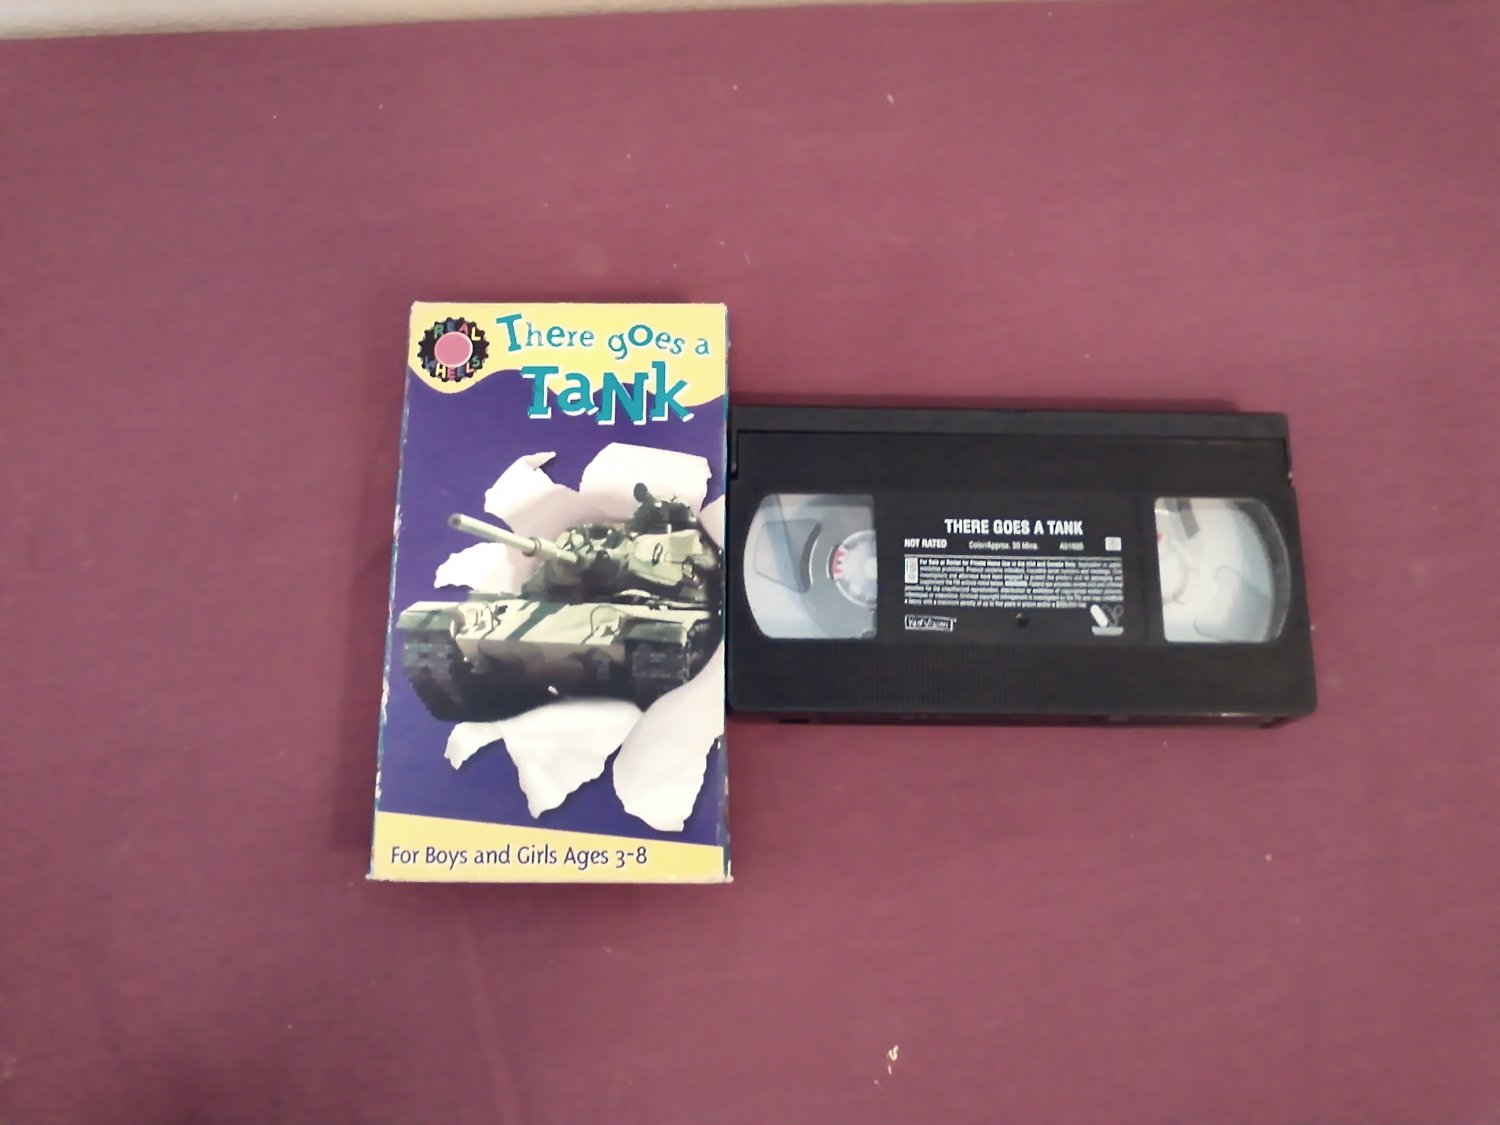 There Goes a Tank - VHS Kid Vision (2003) WarnerVision Warner Bros. Dave Hood